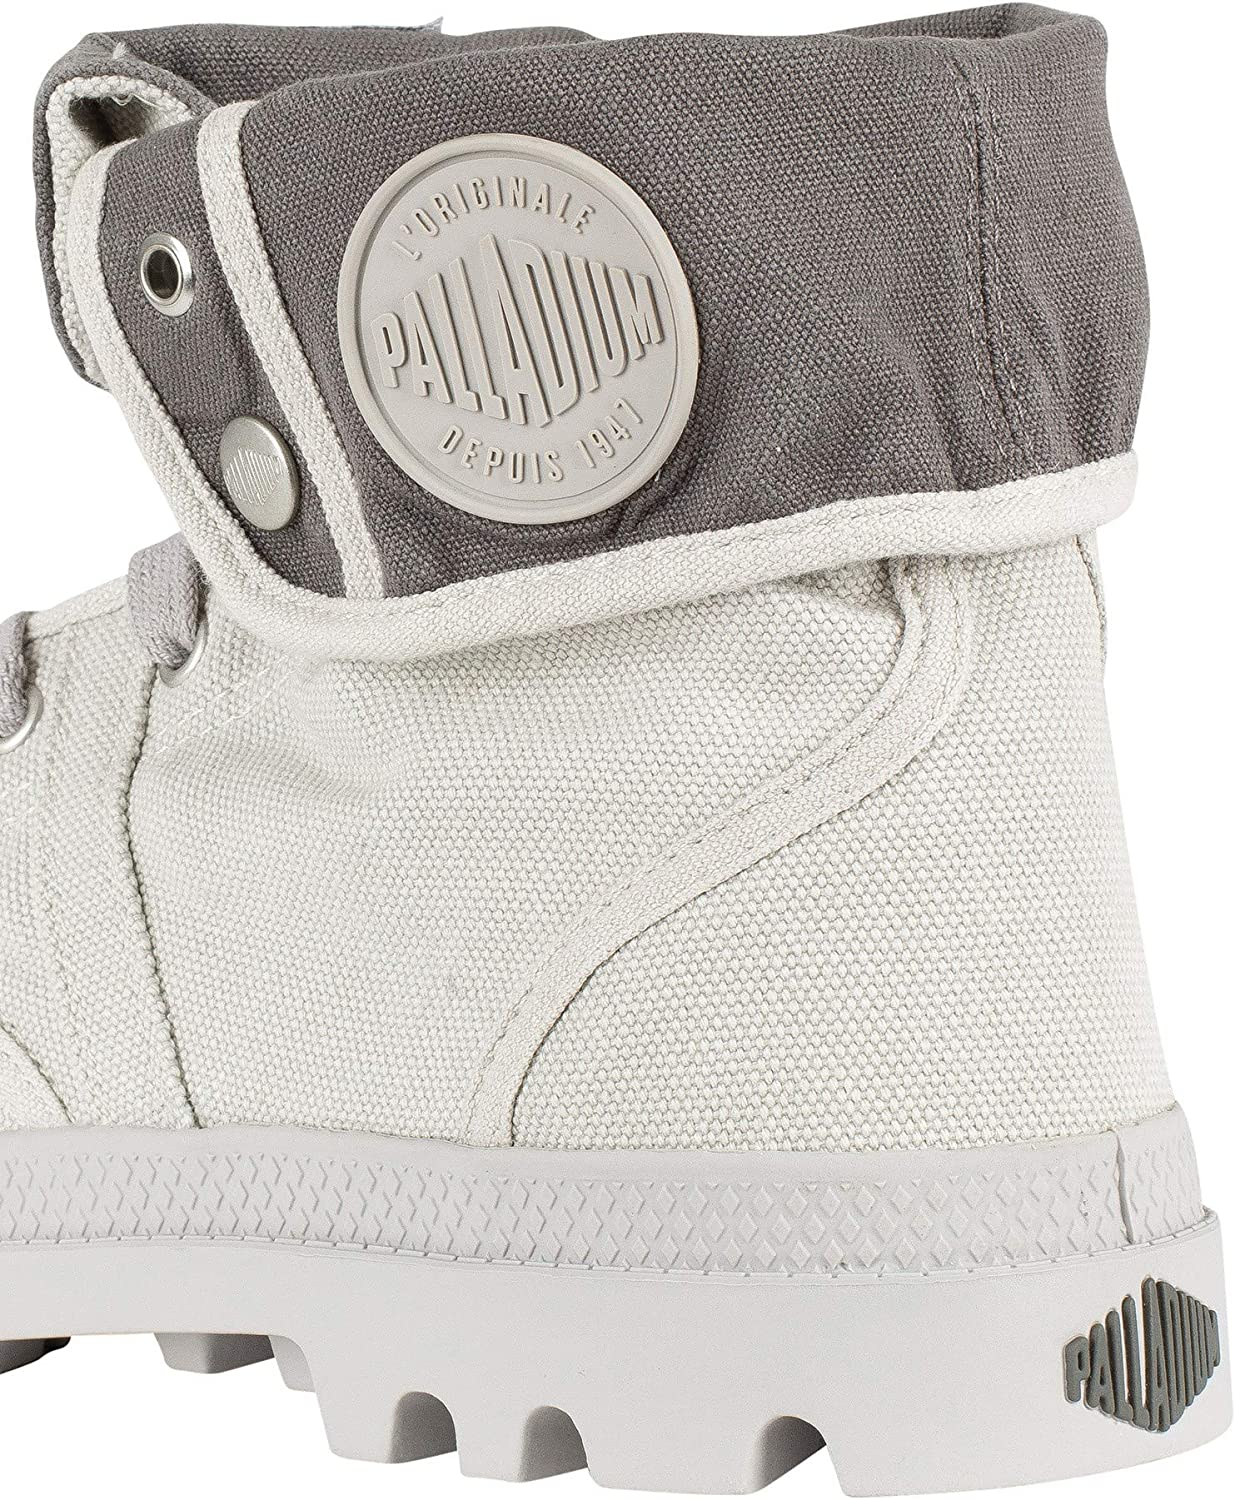 Palladium Us Baggy Ankle Boots//Boots Men Metal 7 Mid Boots Shoes